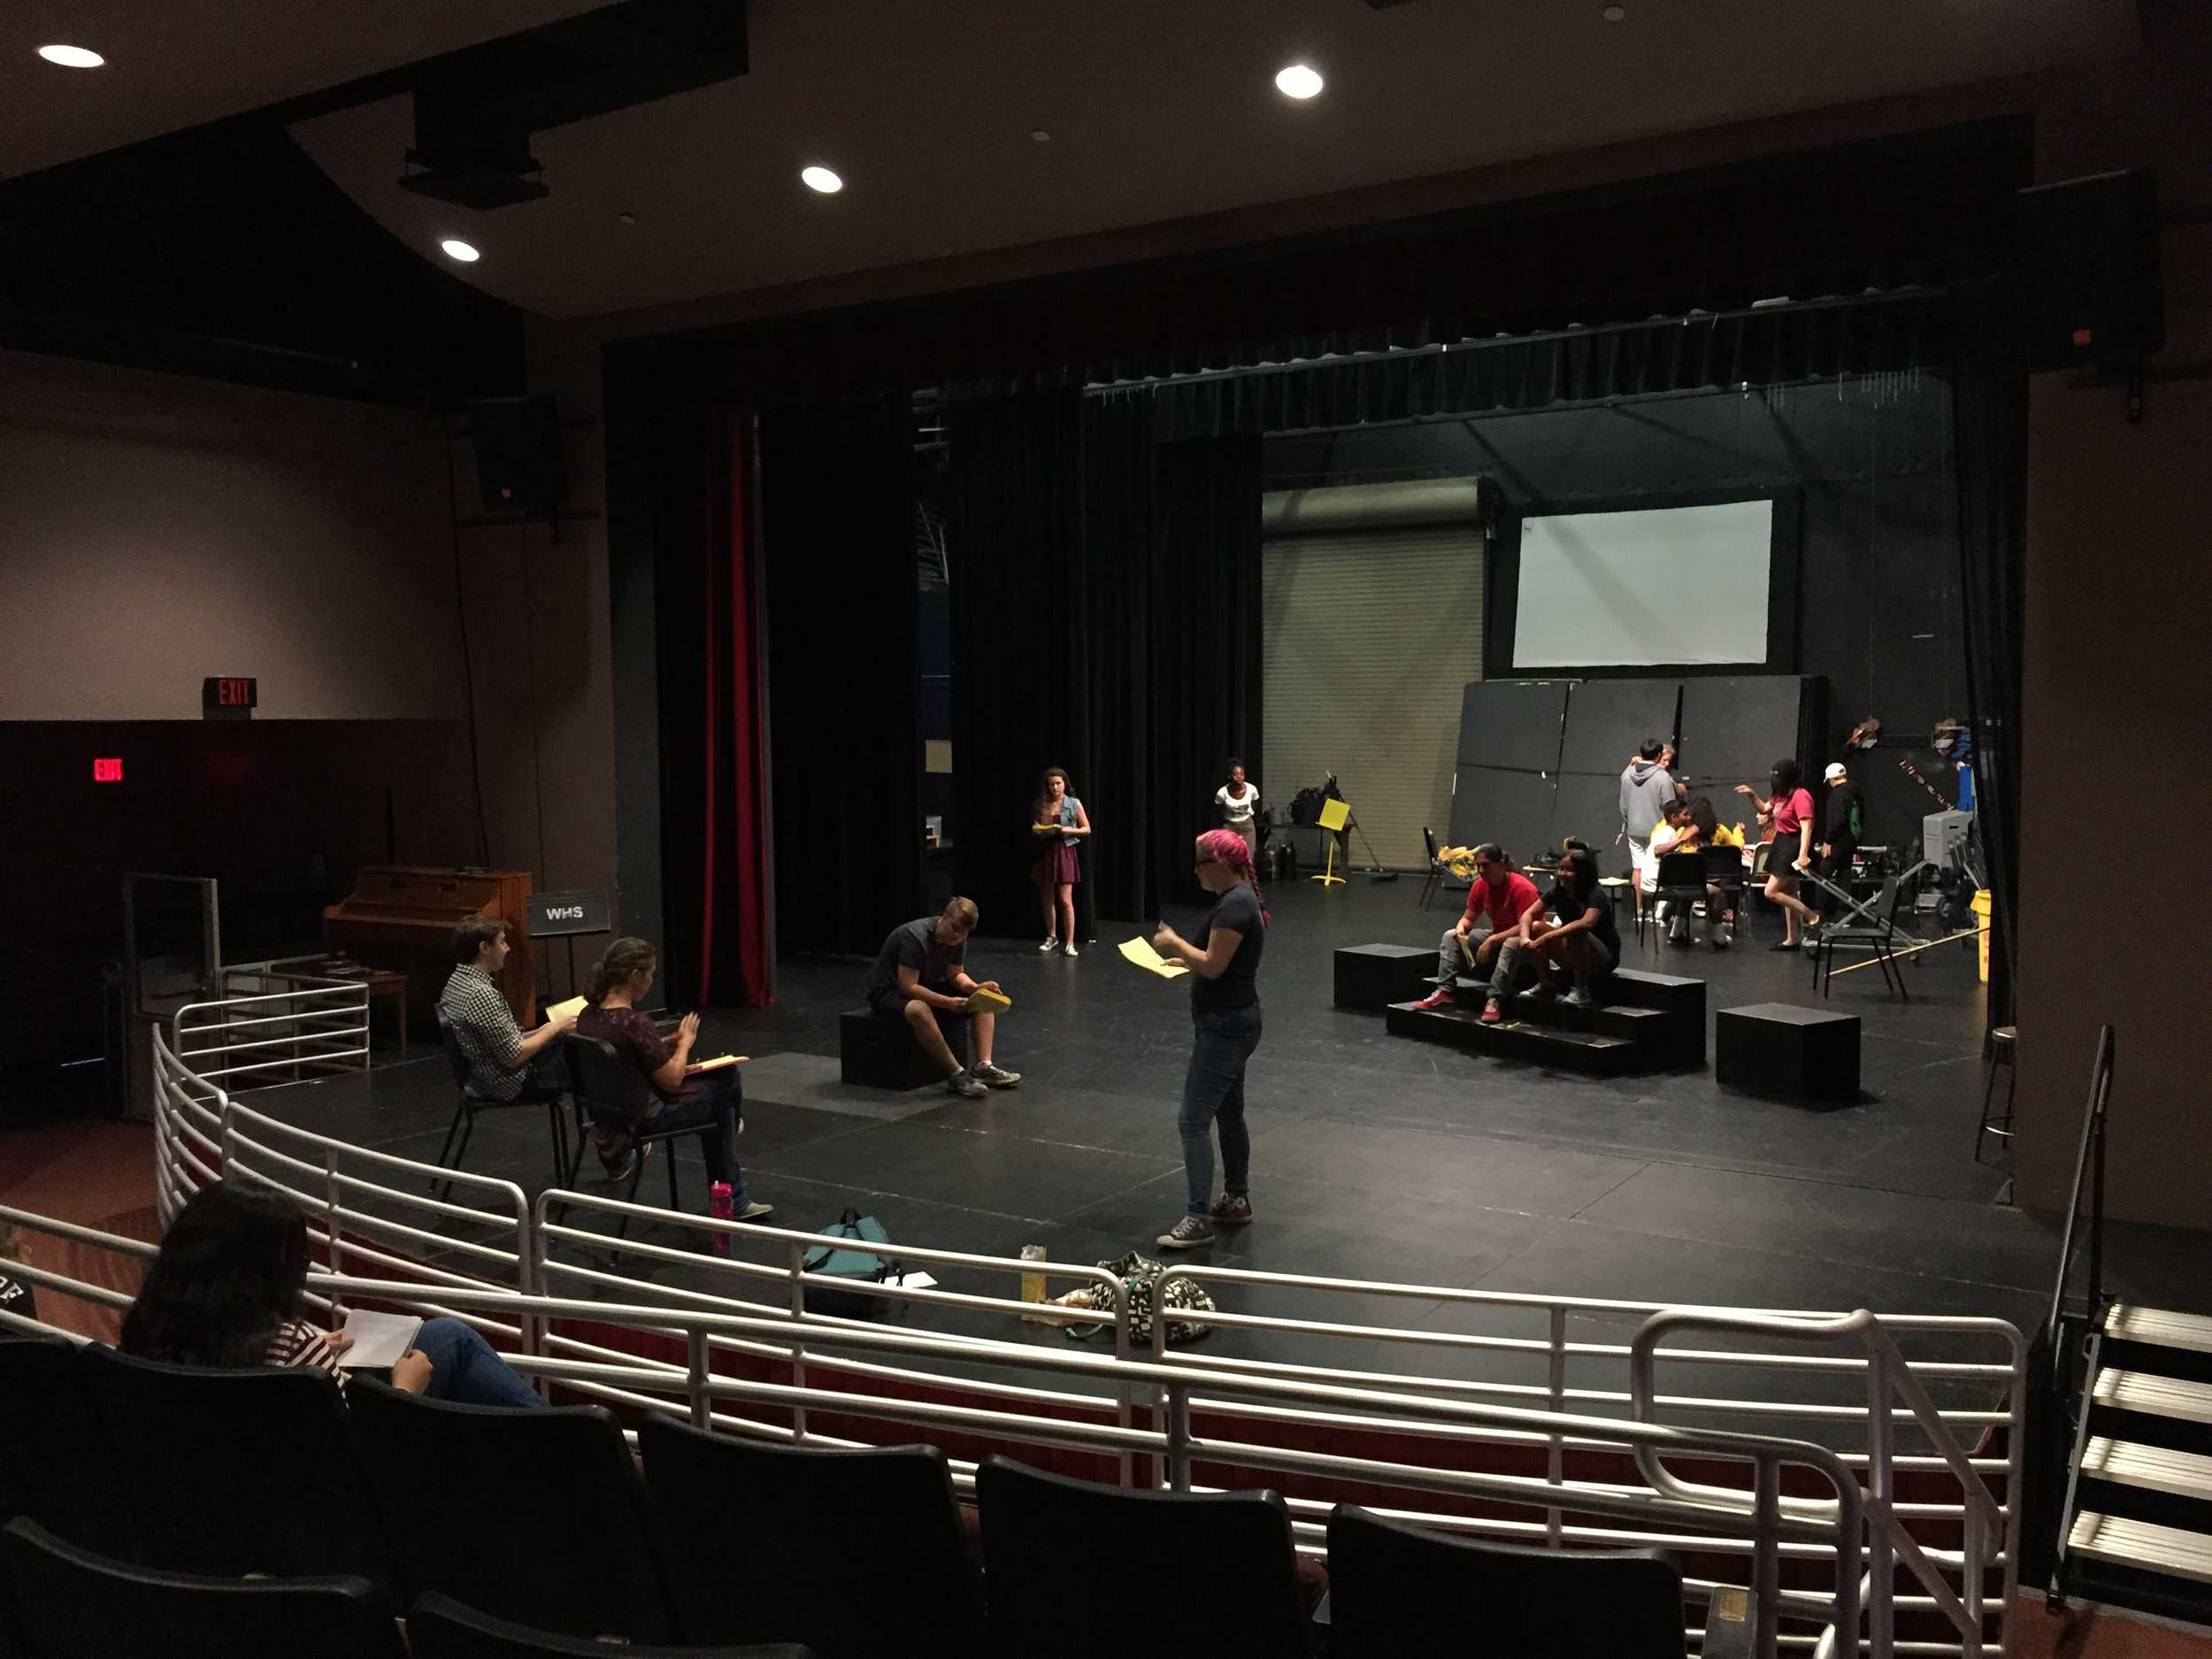 Drama students practice daily before the theater opens with their fall play, A Midsummer Night's Dream.